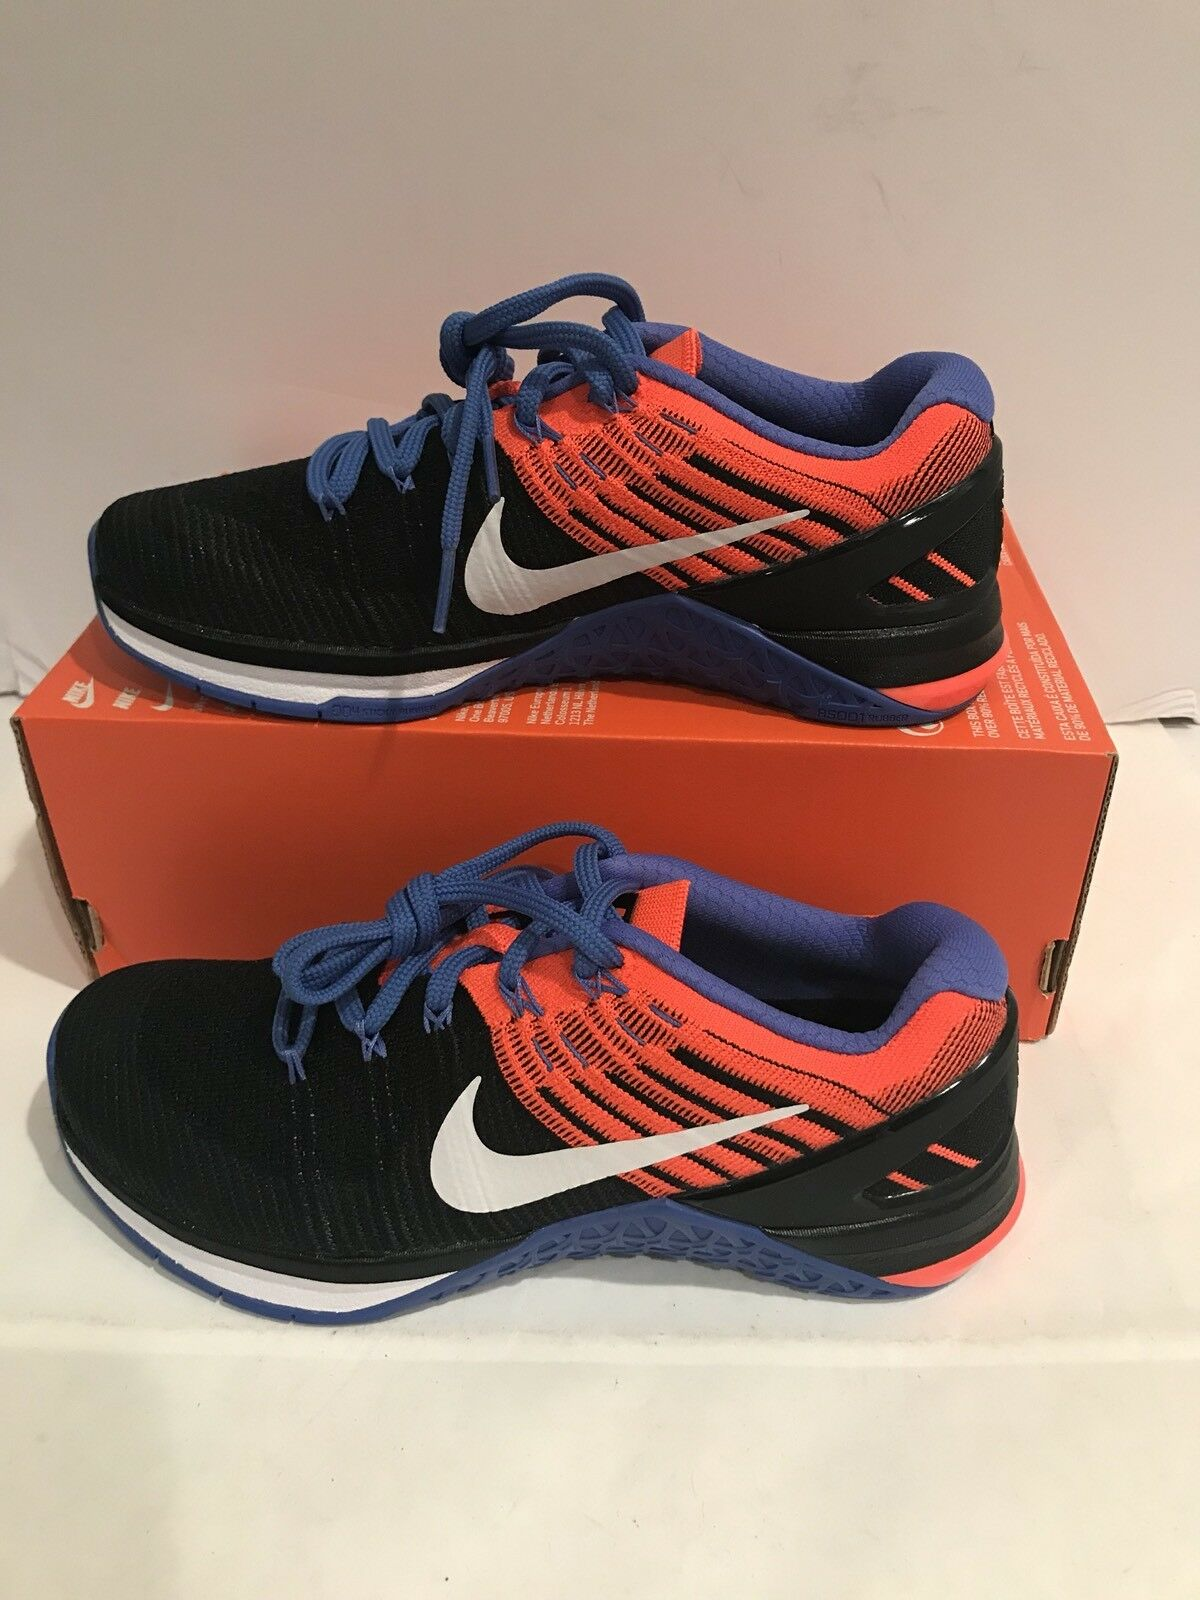 87e60eda9d097 Women s Nike Metcon DSX Flyknit Training Shoes Crossfit 849809-002 NEW NEW  NEW 940419